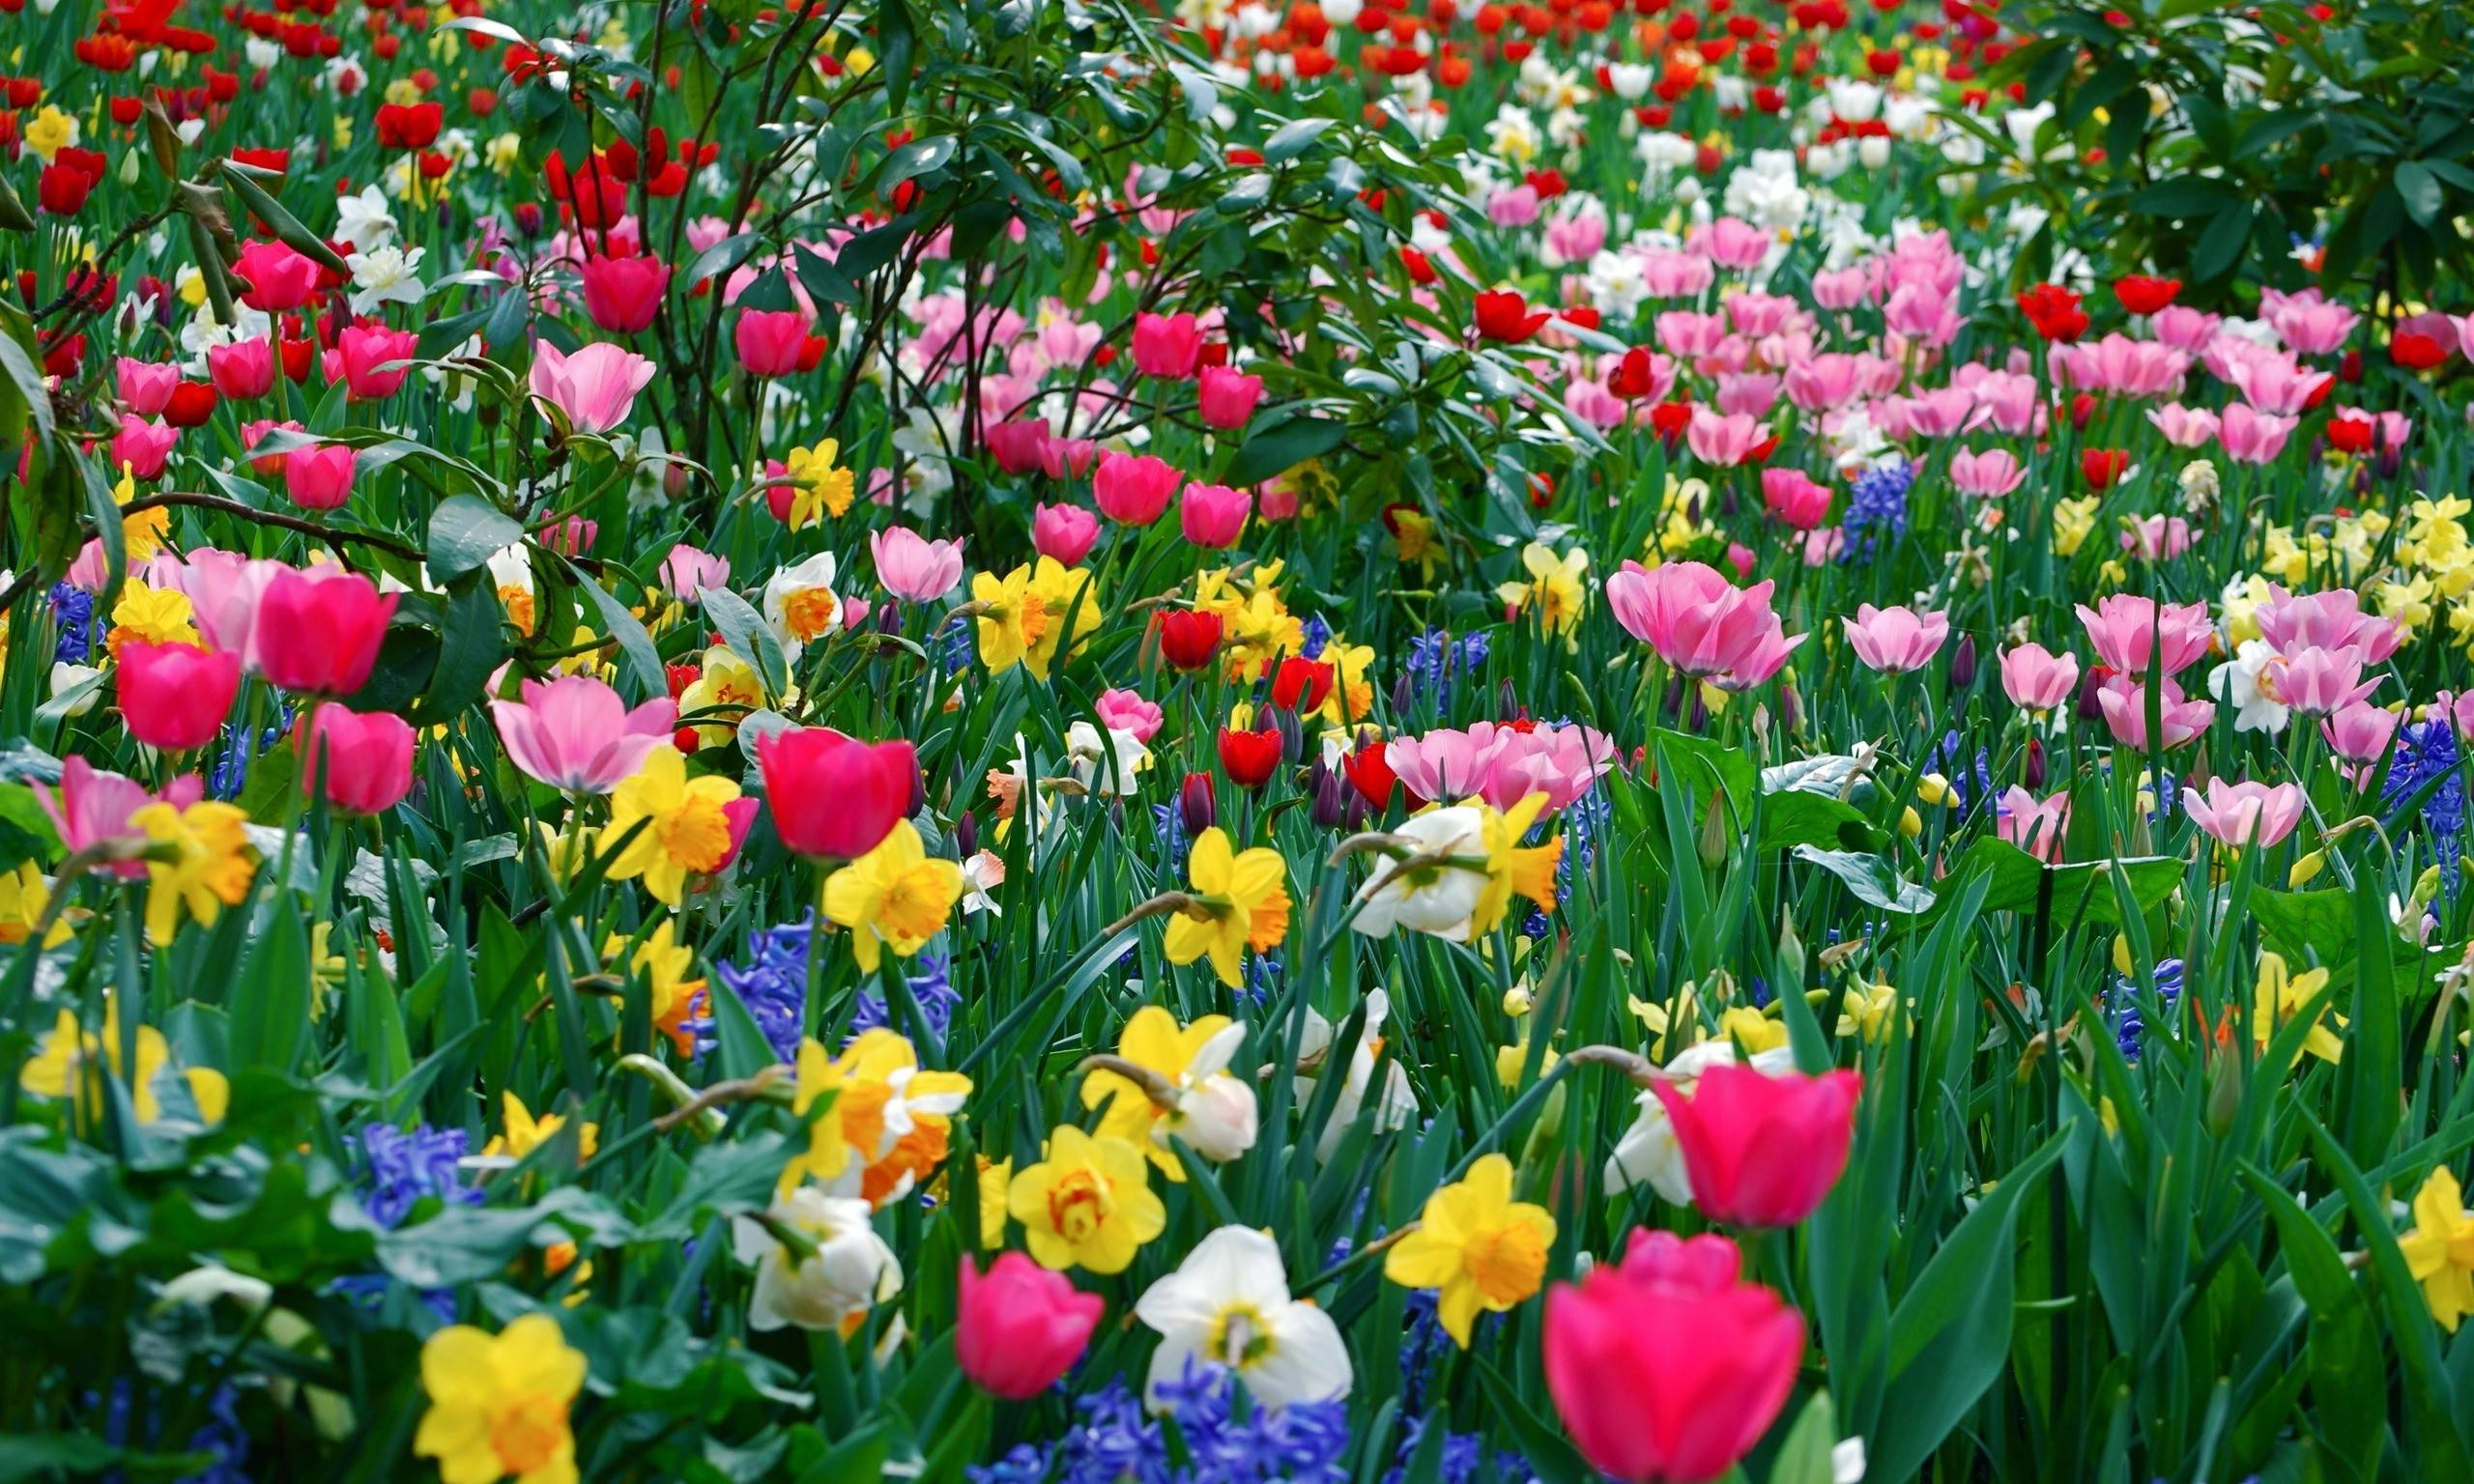 spring flowers backgrounds #4